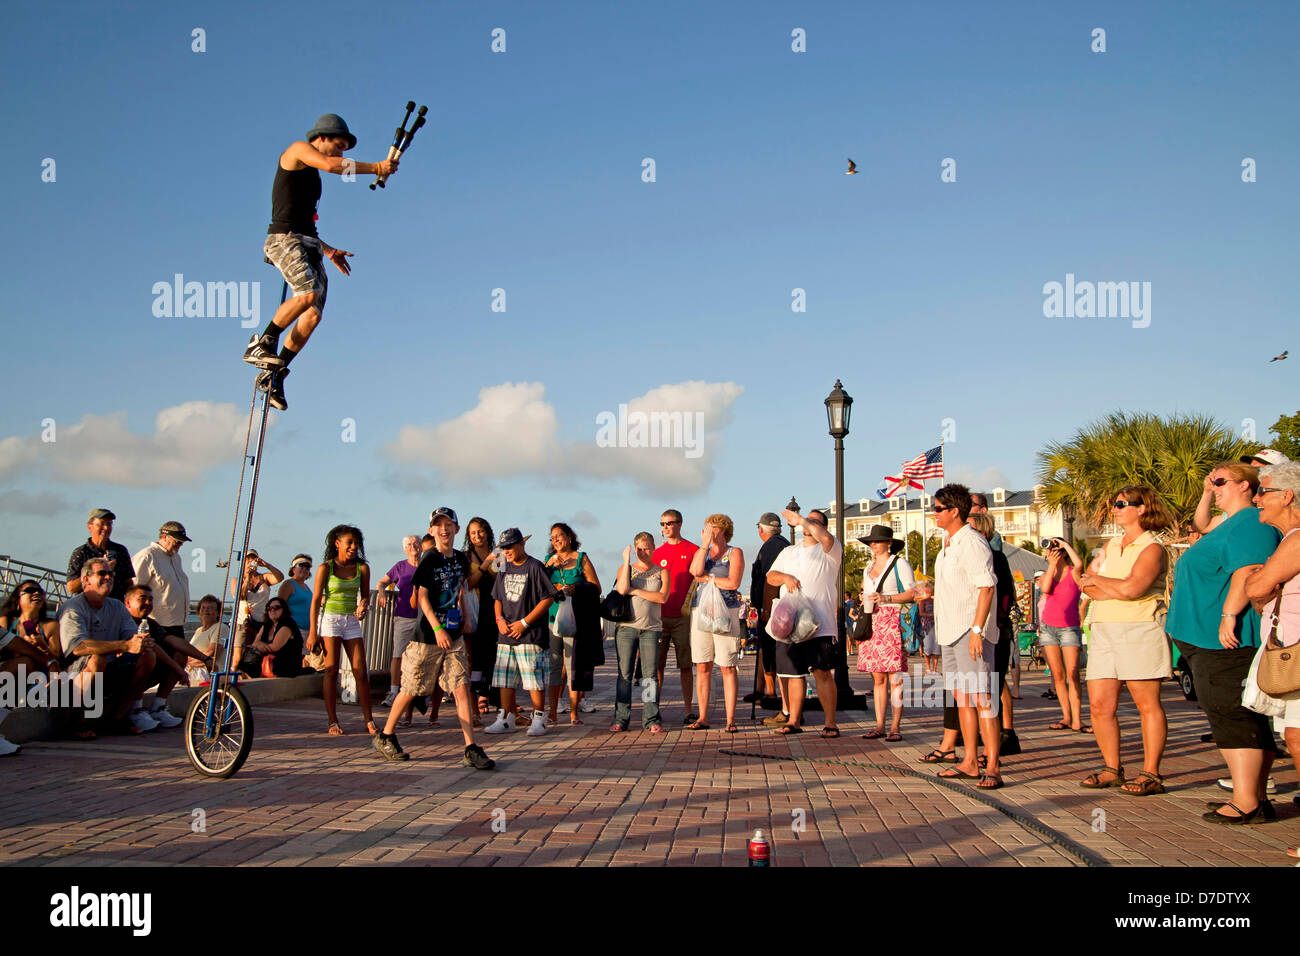 Street performers and spectators at Mallory Square in Key West, Florida Keys, Florida, USA - Stock Image